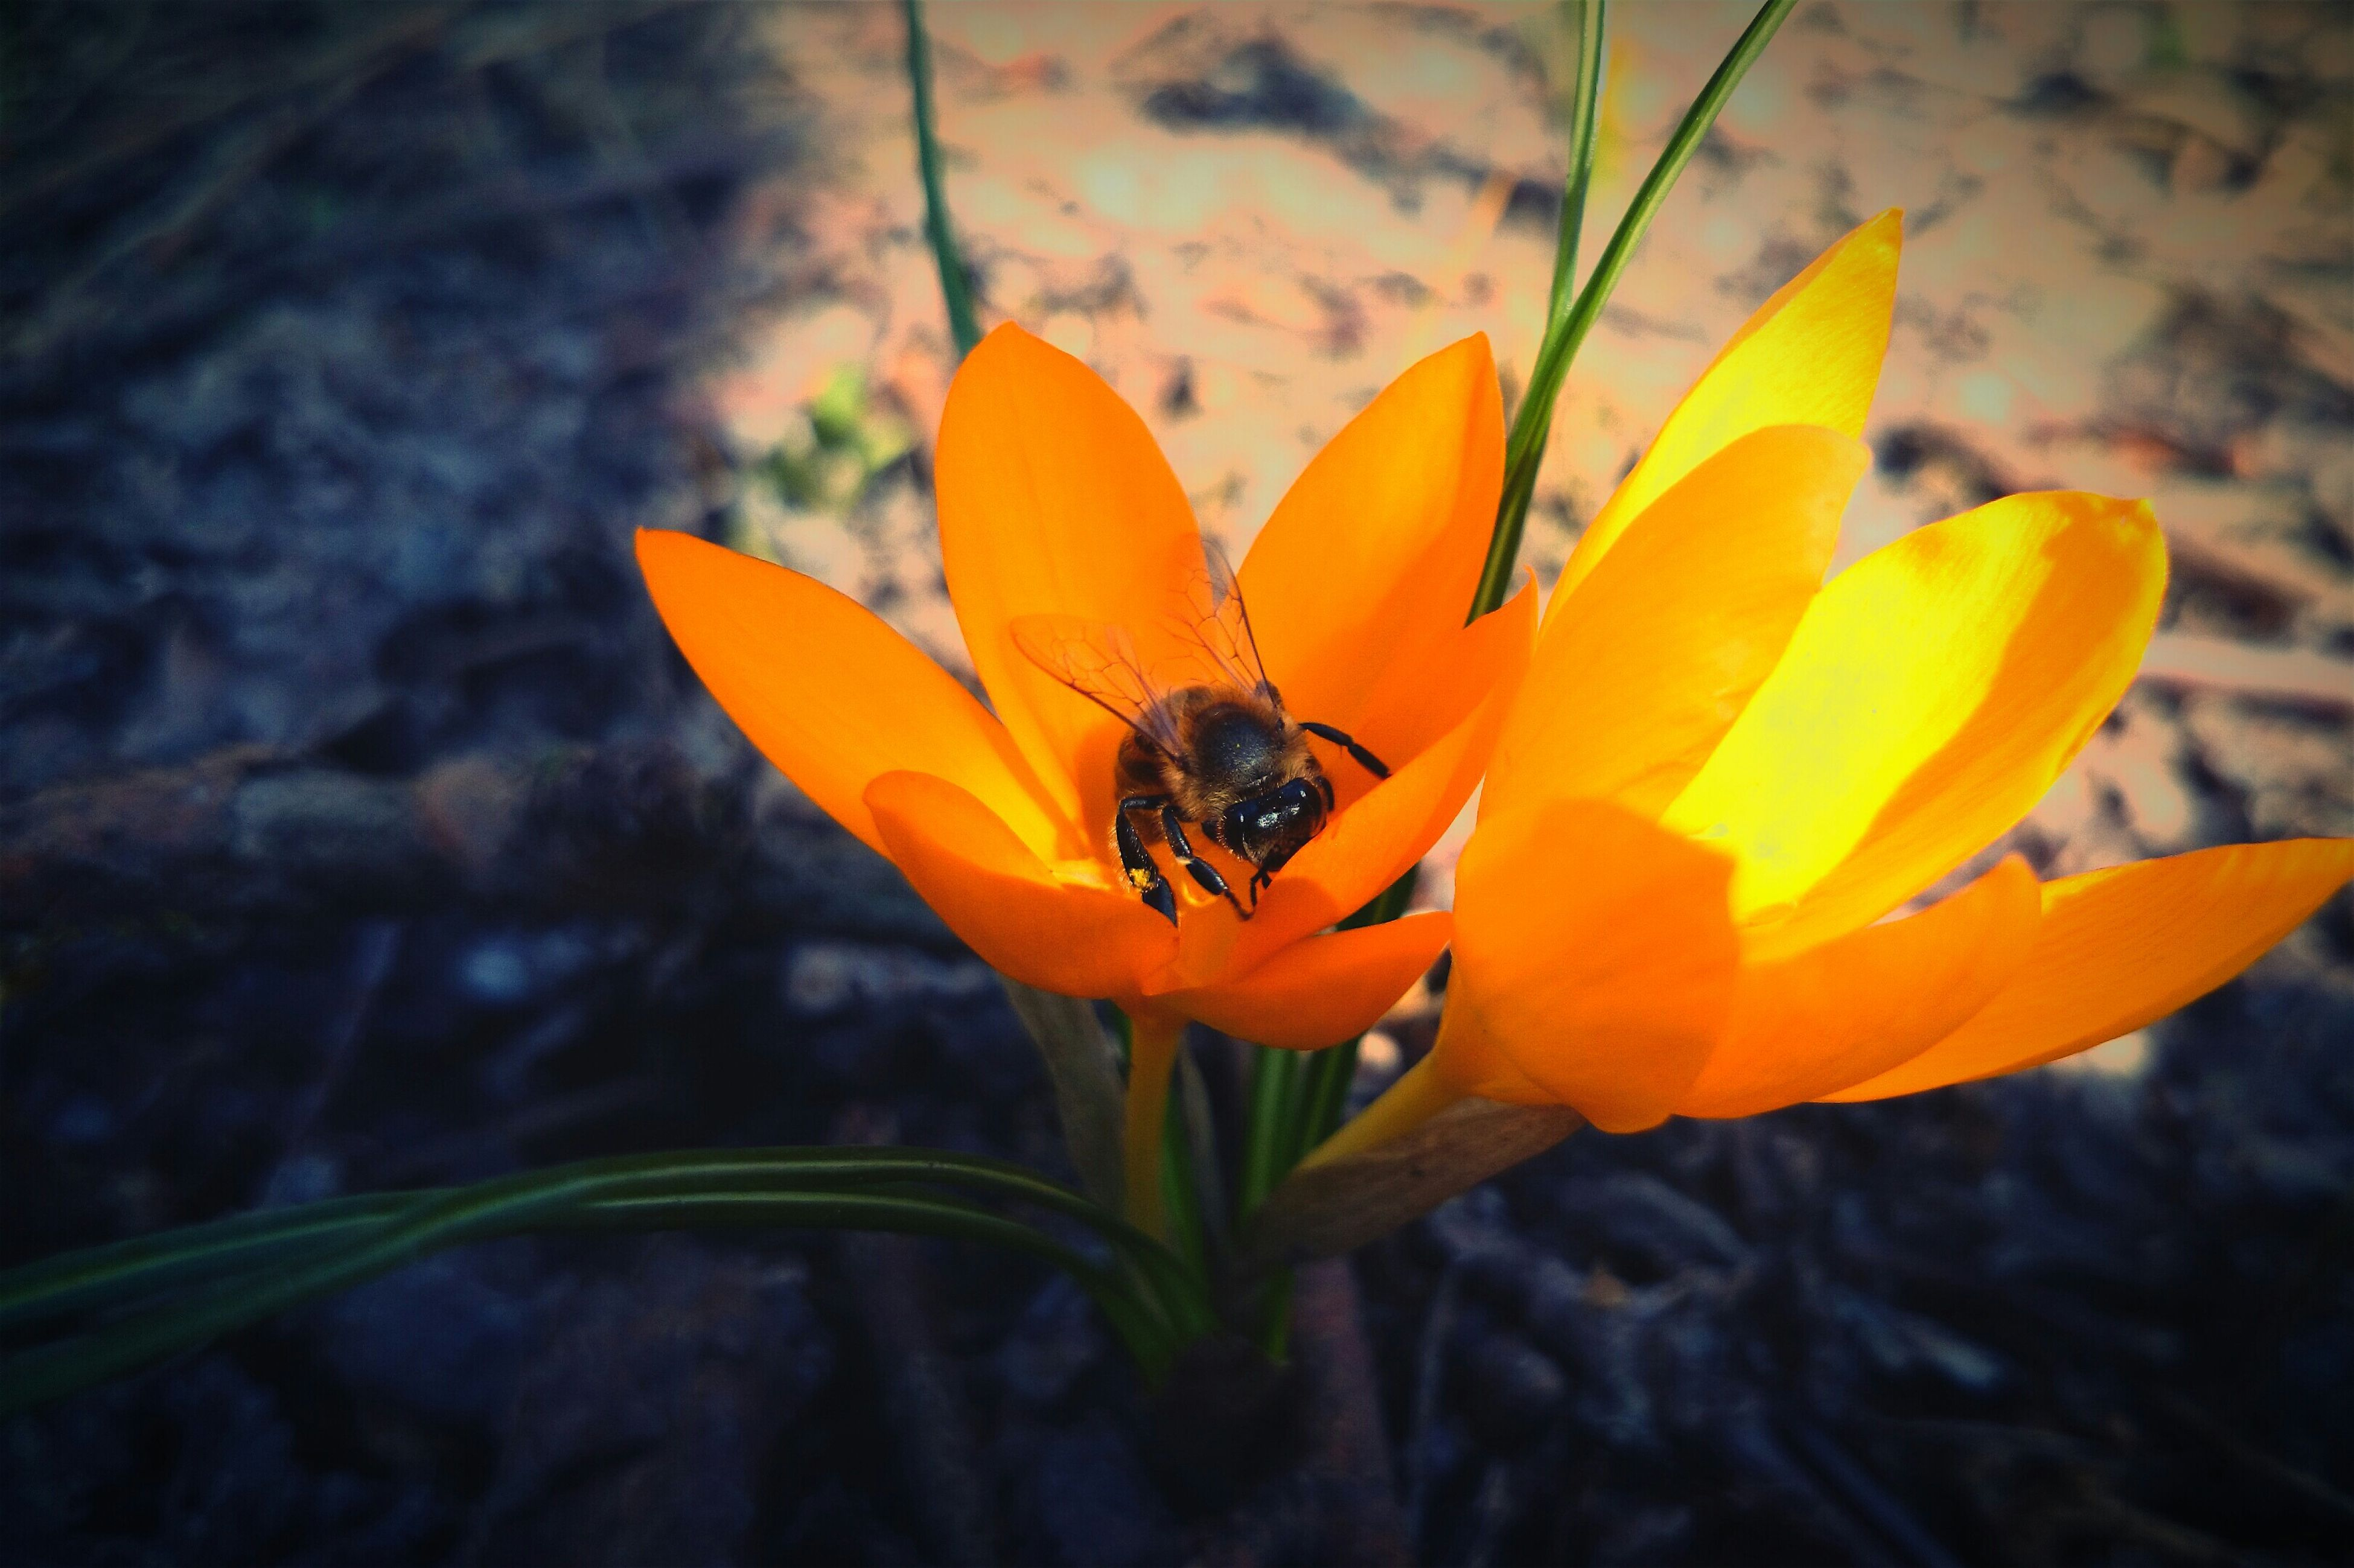 flower, petal, one animal, insect, flower head, fragility, freshness, animal themes, yellow, single flower, close-up, animals in the wild, growth, wildlife, beauty in nature, plant, focus on foreground, nature, blooming, pollen